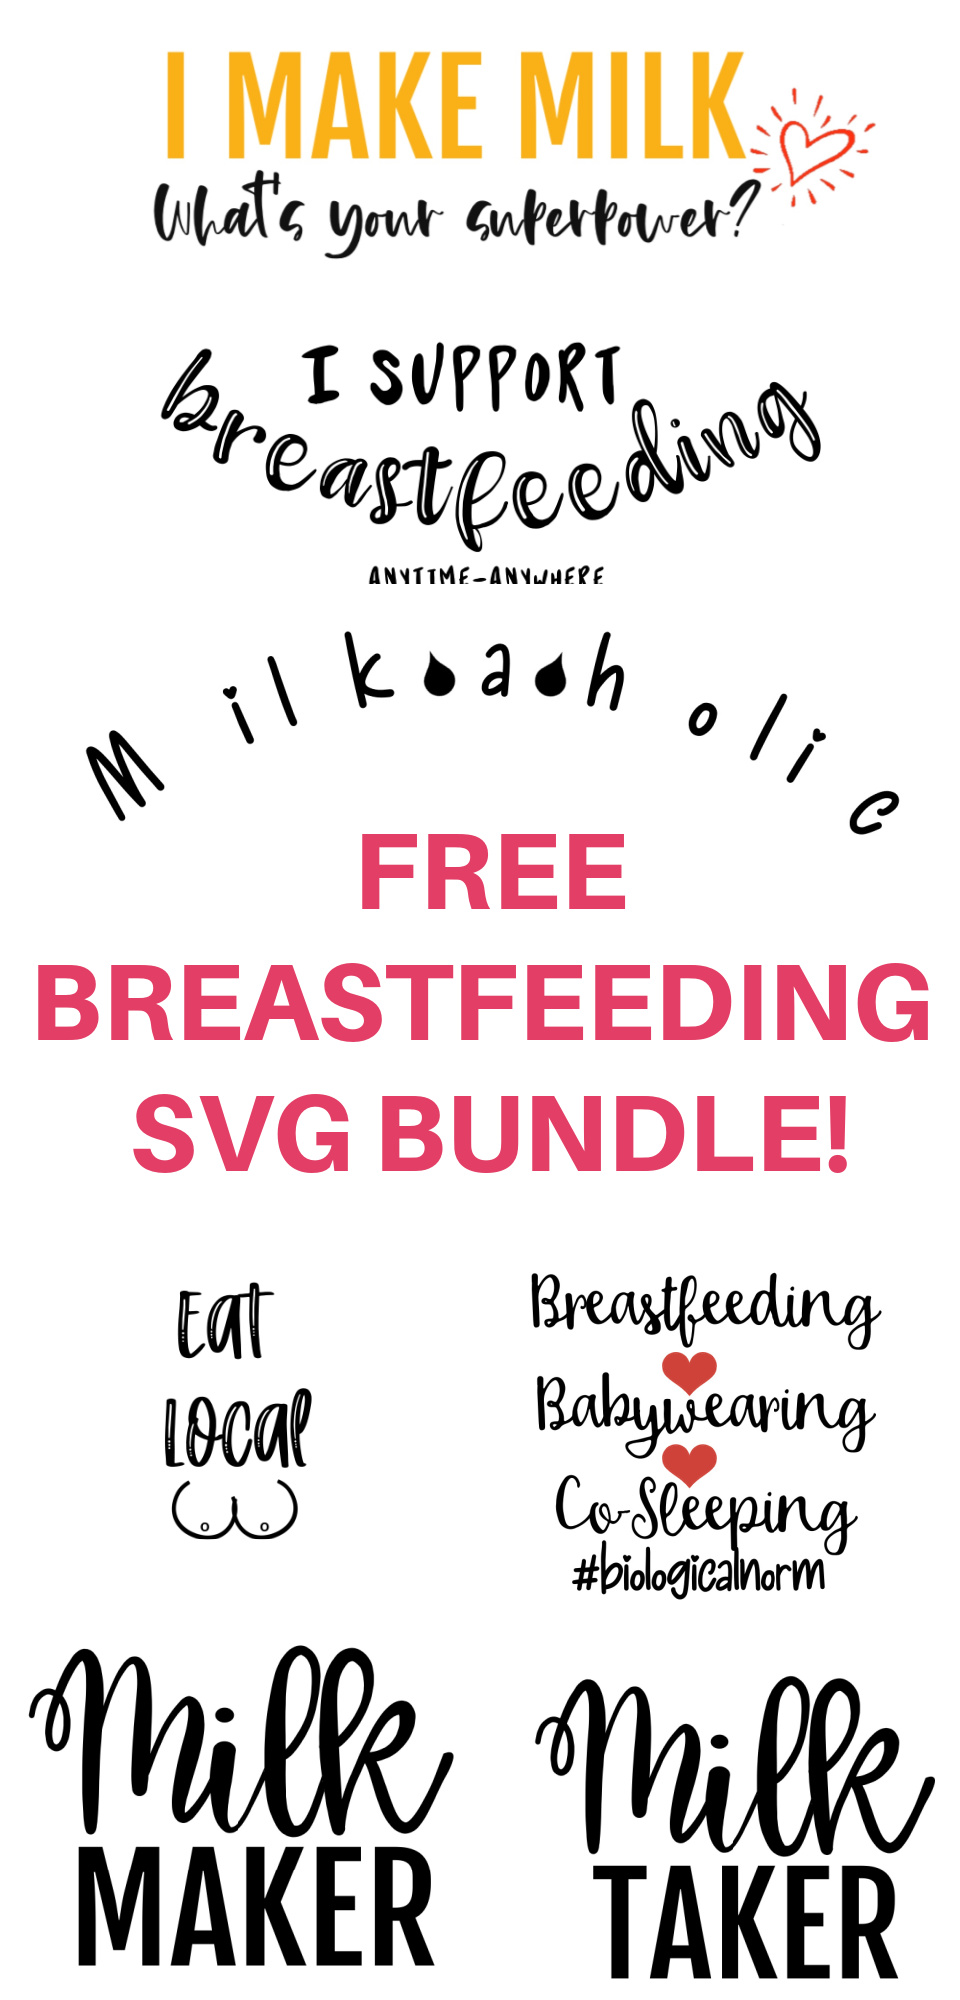 Celebrate breastfeeding with one of these free breastfeeding SVG files (also available as JPG). Add them to t-shirts, onesies, bibs, walls...whatever you want!